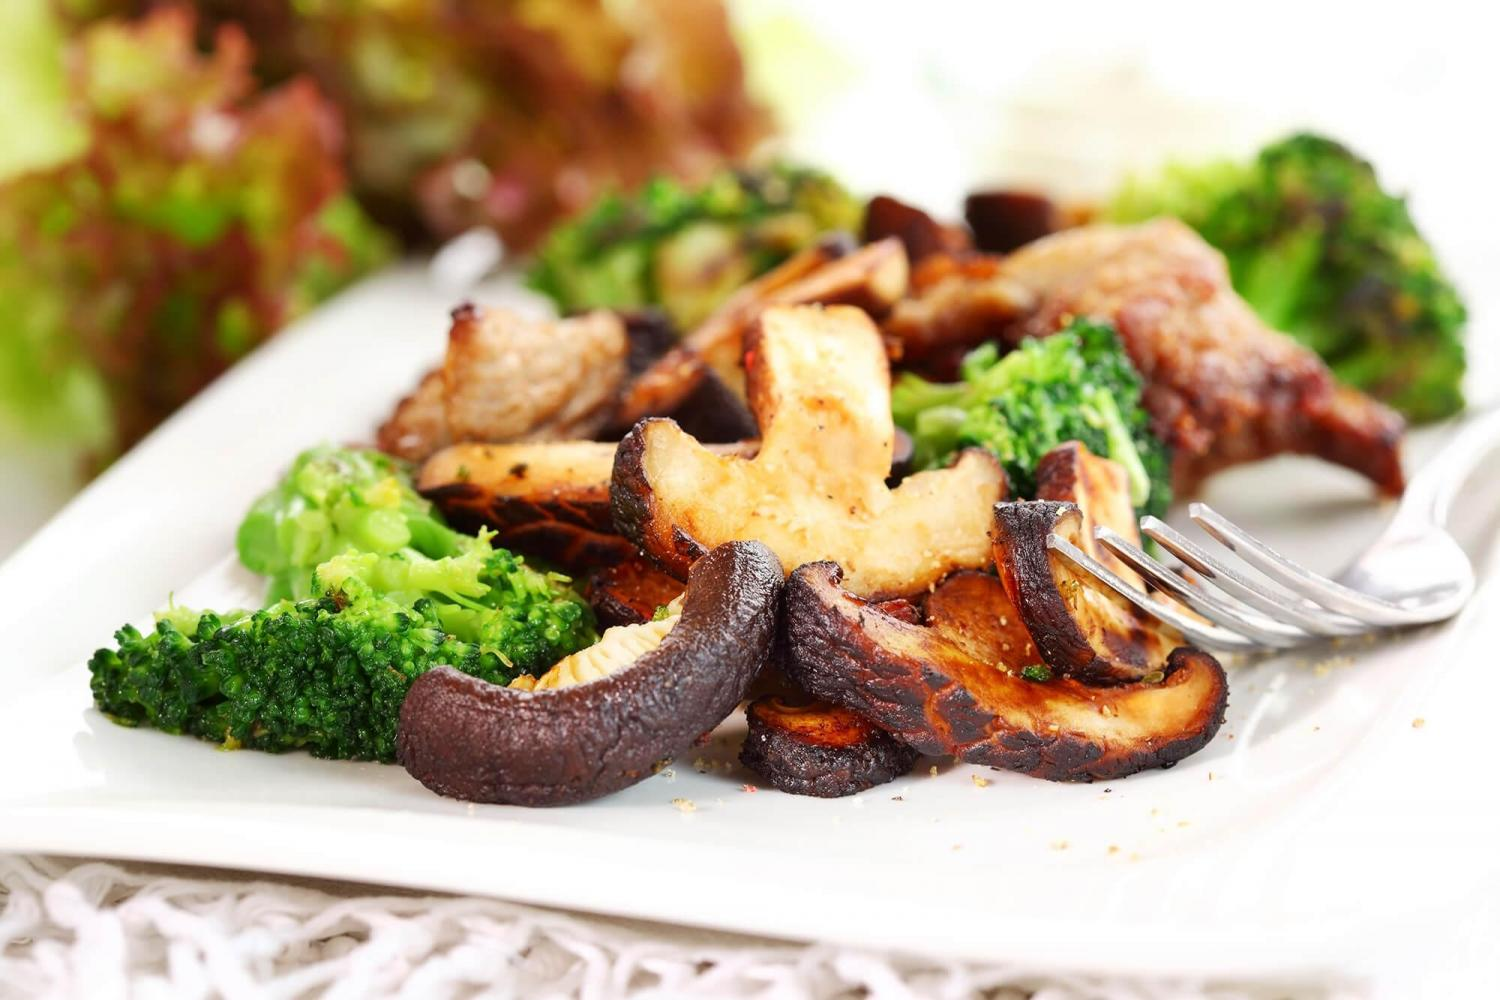 stir fry broccoli and mushrooms on white plate with fork